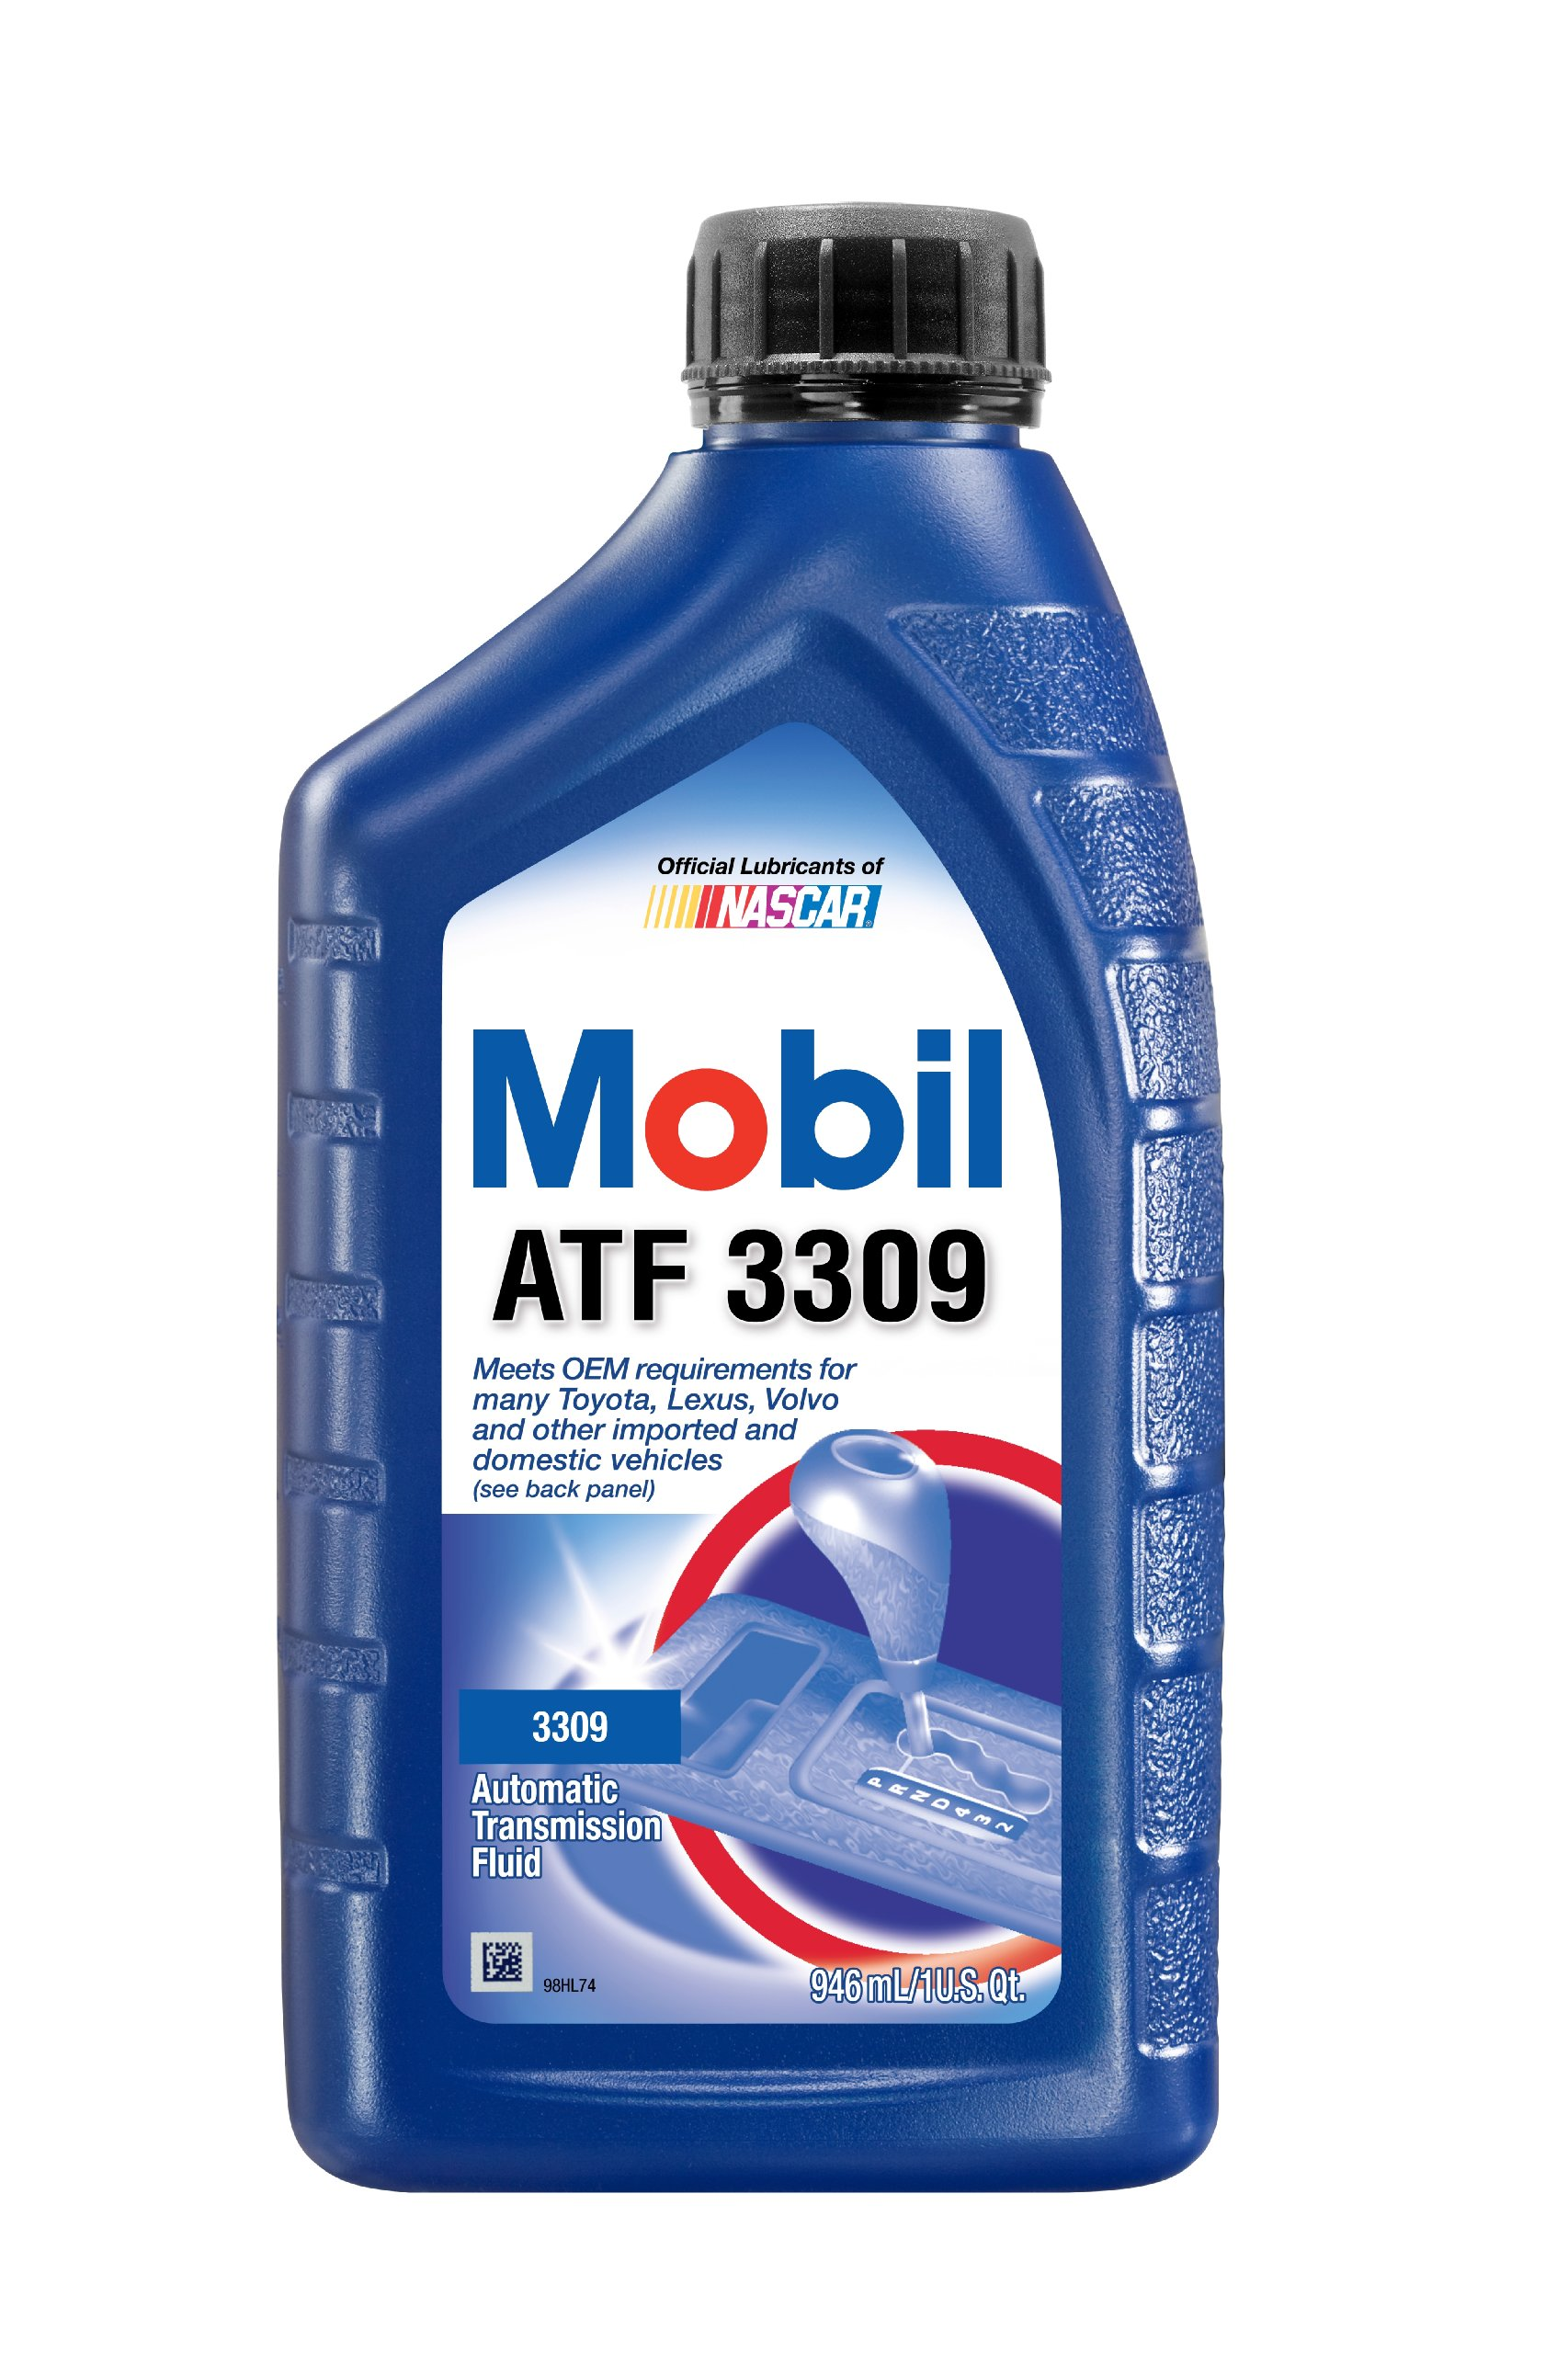 Mobil 1 55221 3309 Automatic Transmission Fluid - 1 Quart (Pack of 12) by Mobil 1